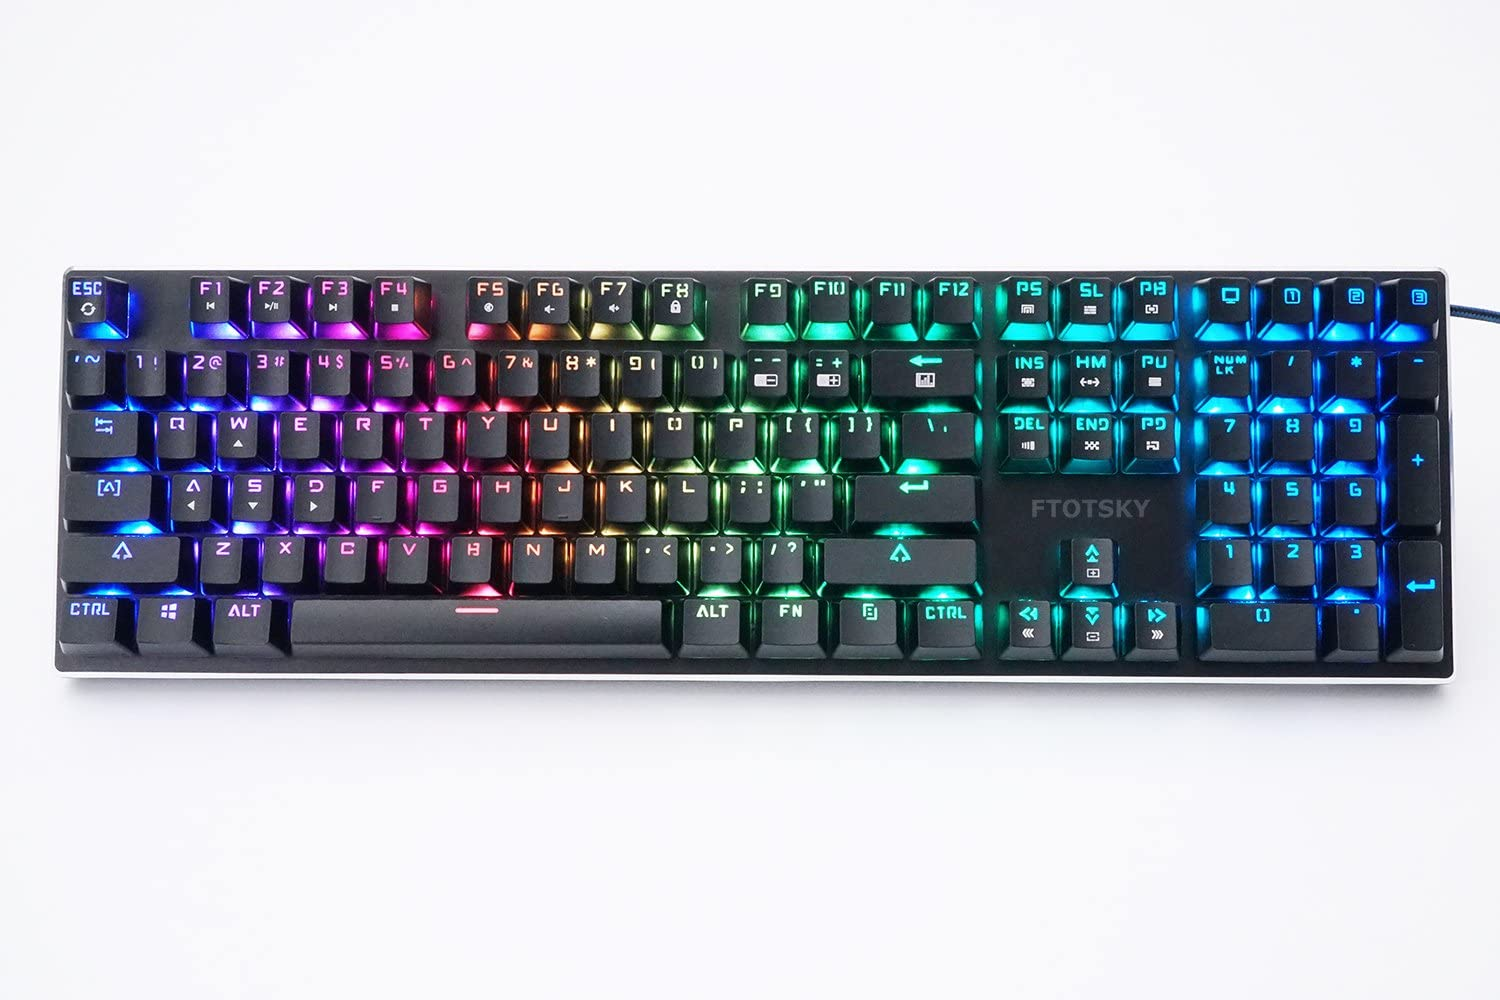 FTOTSKY Mechanical Keyboard RGB Backlit Wired Gaming Keyboard Extra-Thin & Light, Kailh Latest Low Profile Blue Switches, 104 Keys N-key Rollover